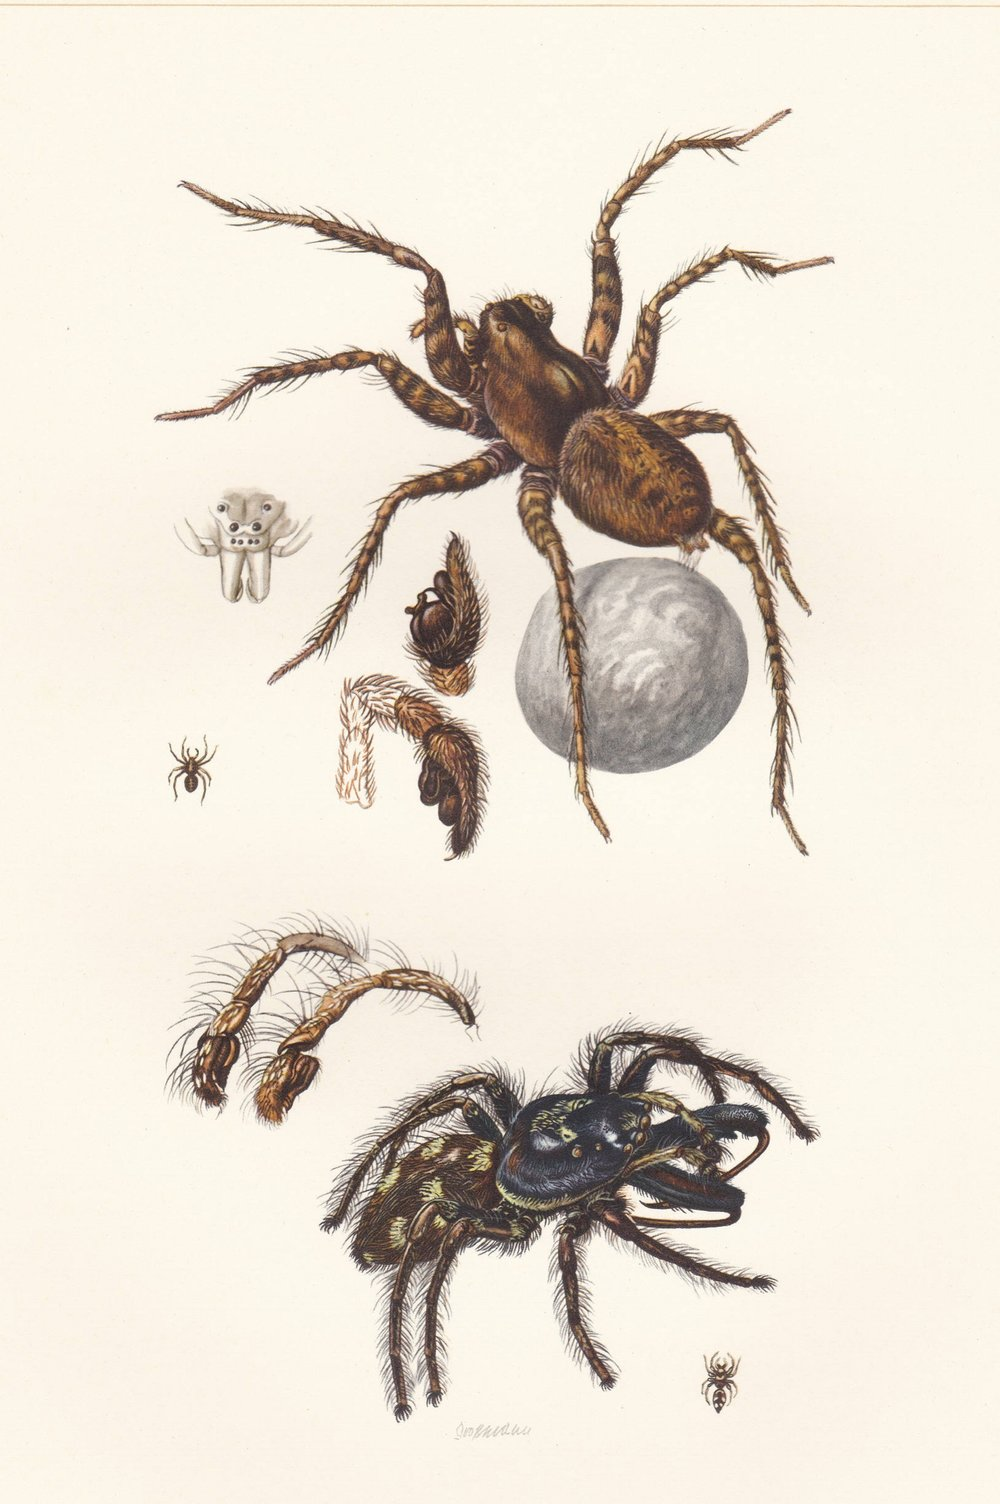 Vintage lithograph of the zebra spider and the wolf spider from 1956